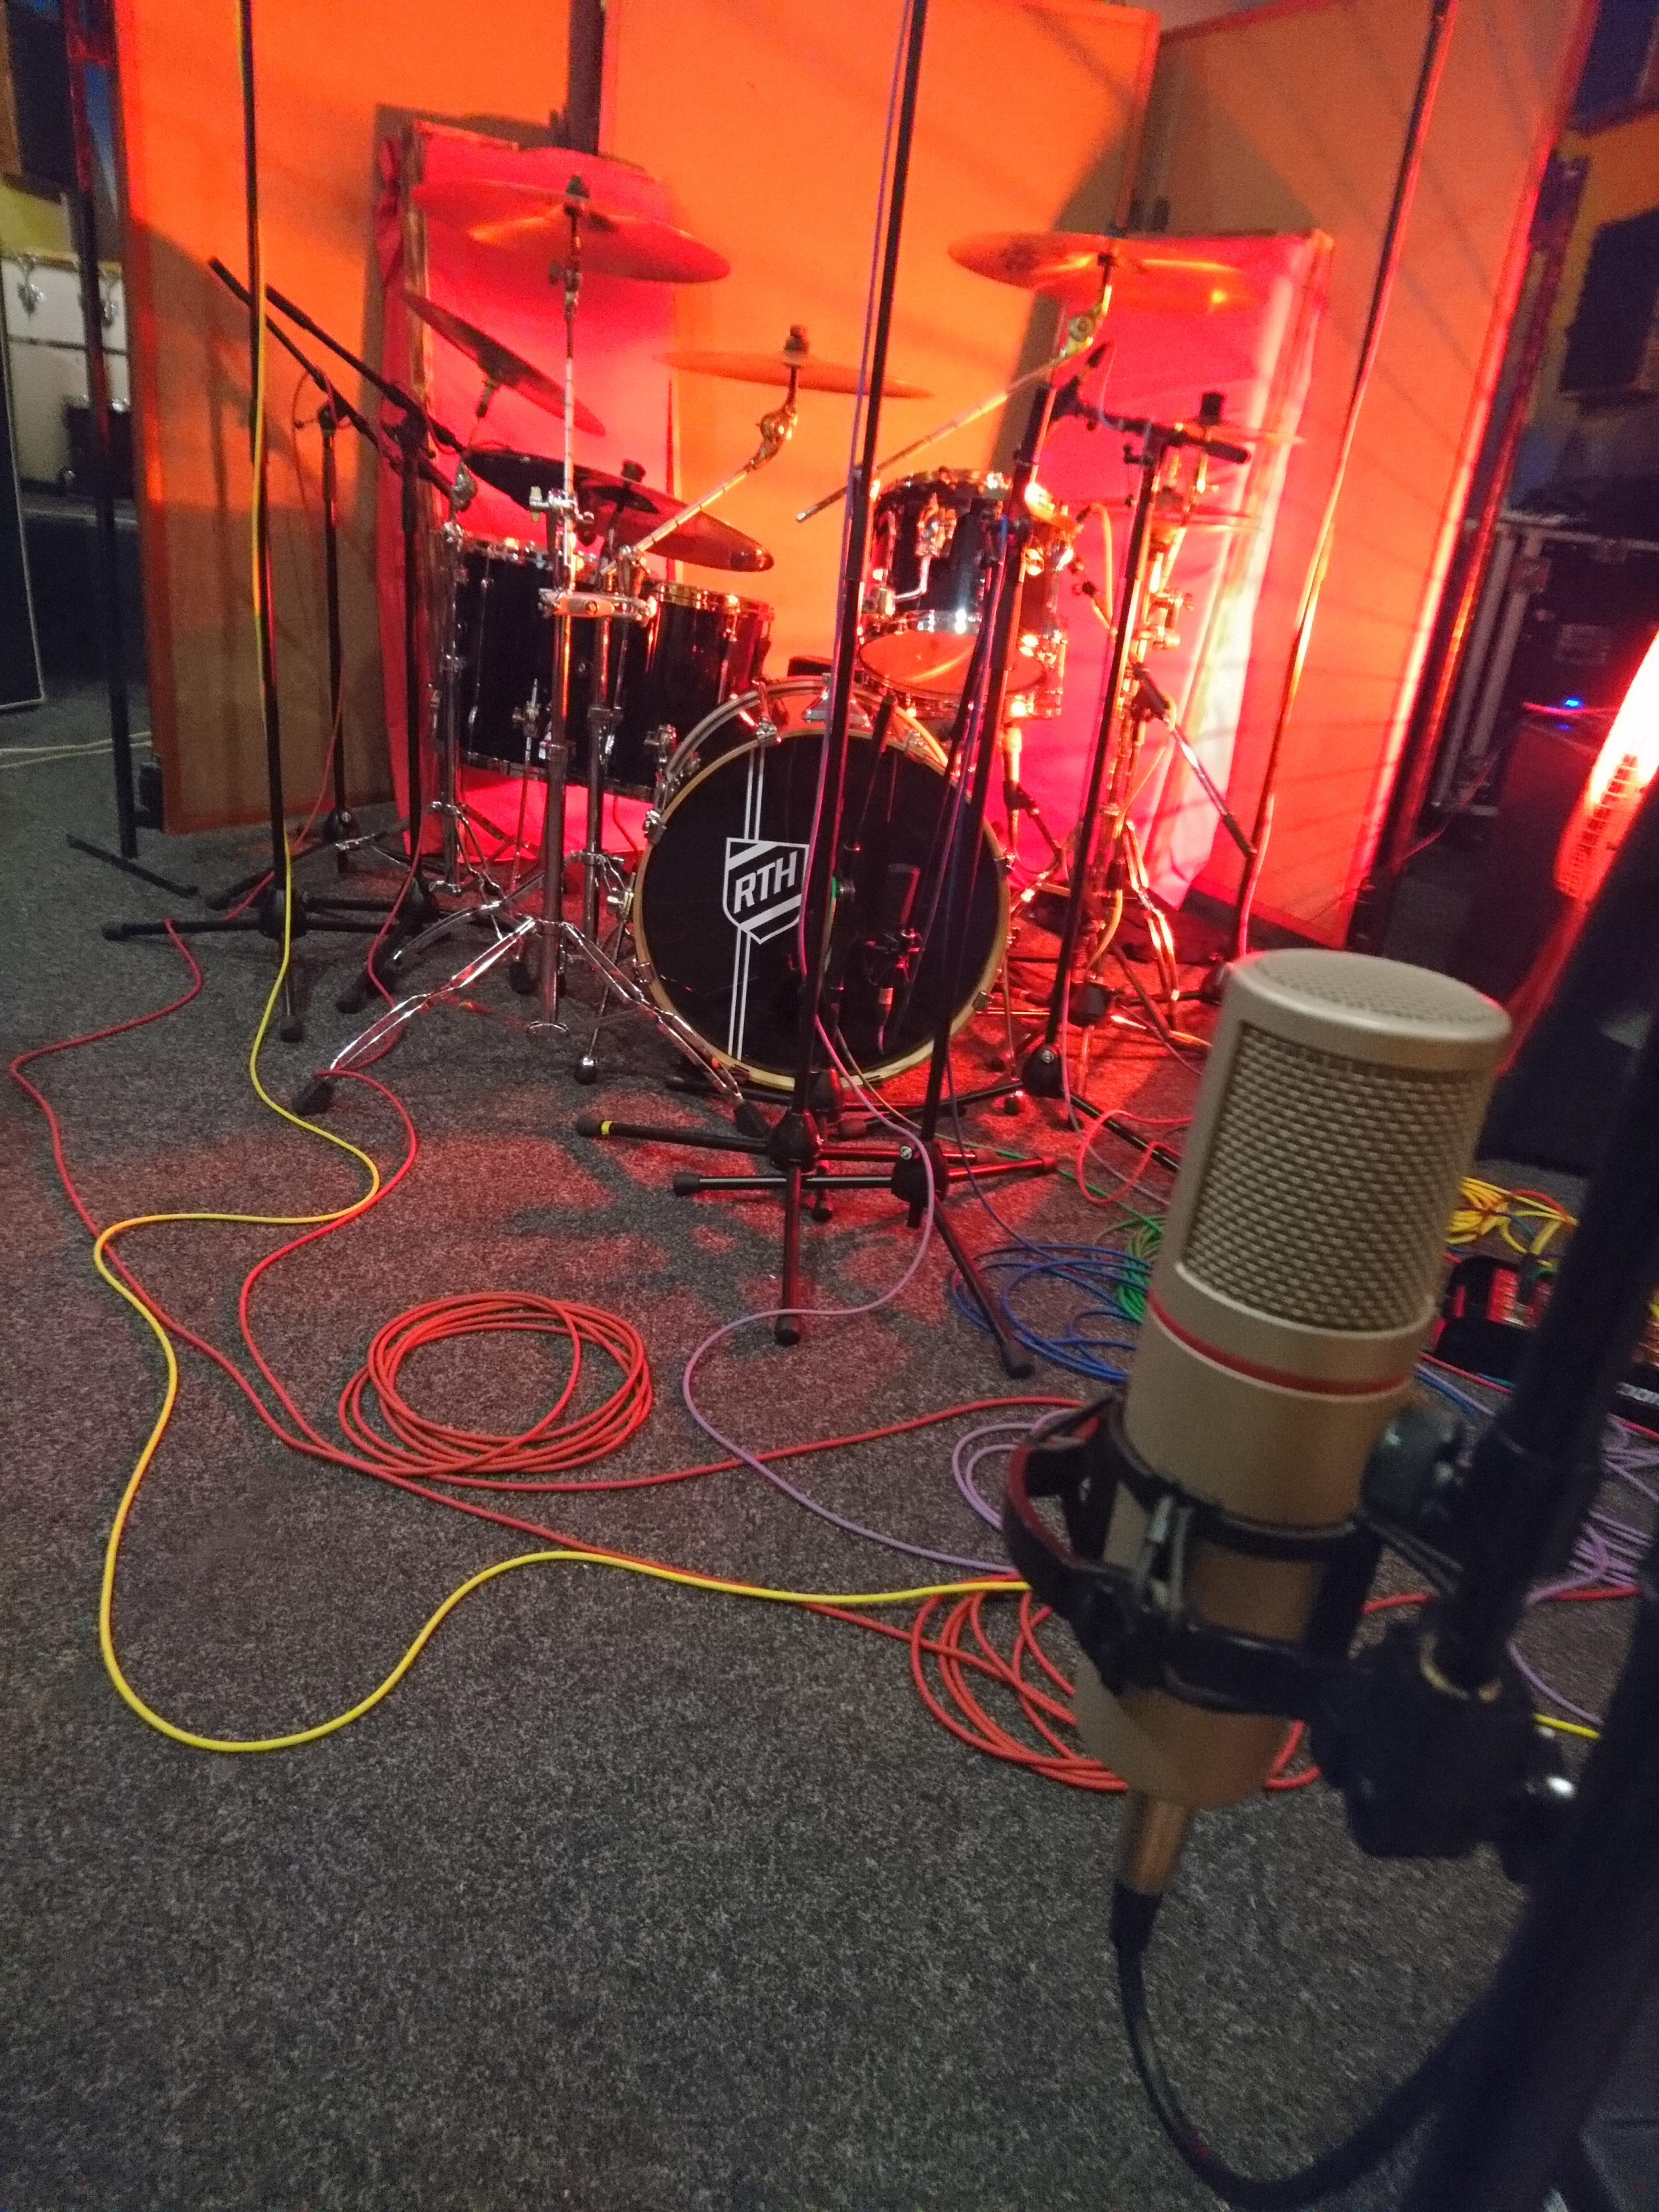 Sound Production Glasgow Clyde College Recording Studio Wiring We Make Use Of Our Own Extensive Facilities As Well A Commercial Where You Will Gain Hands On Experience And Have The Opportunity To